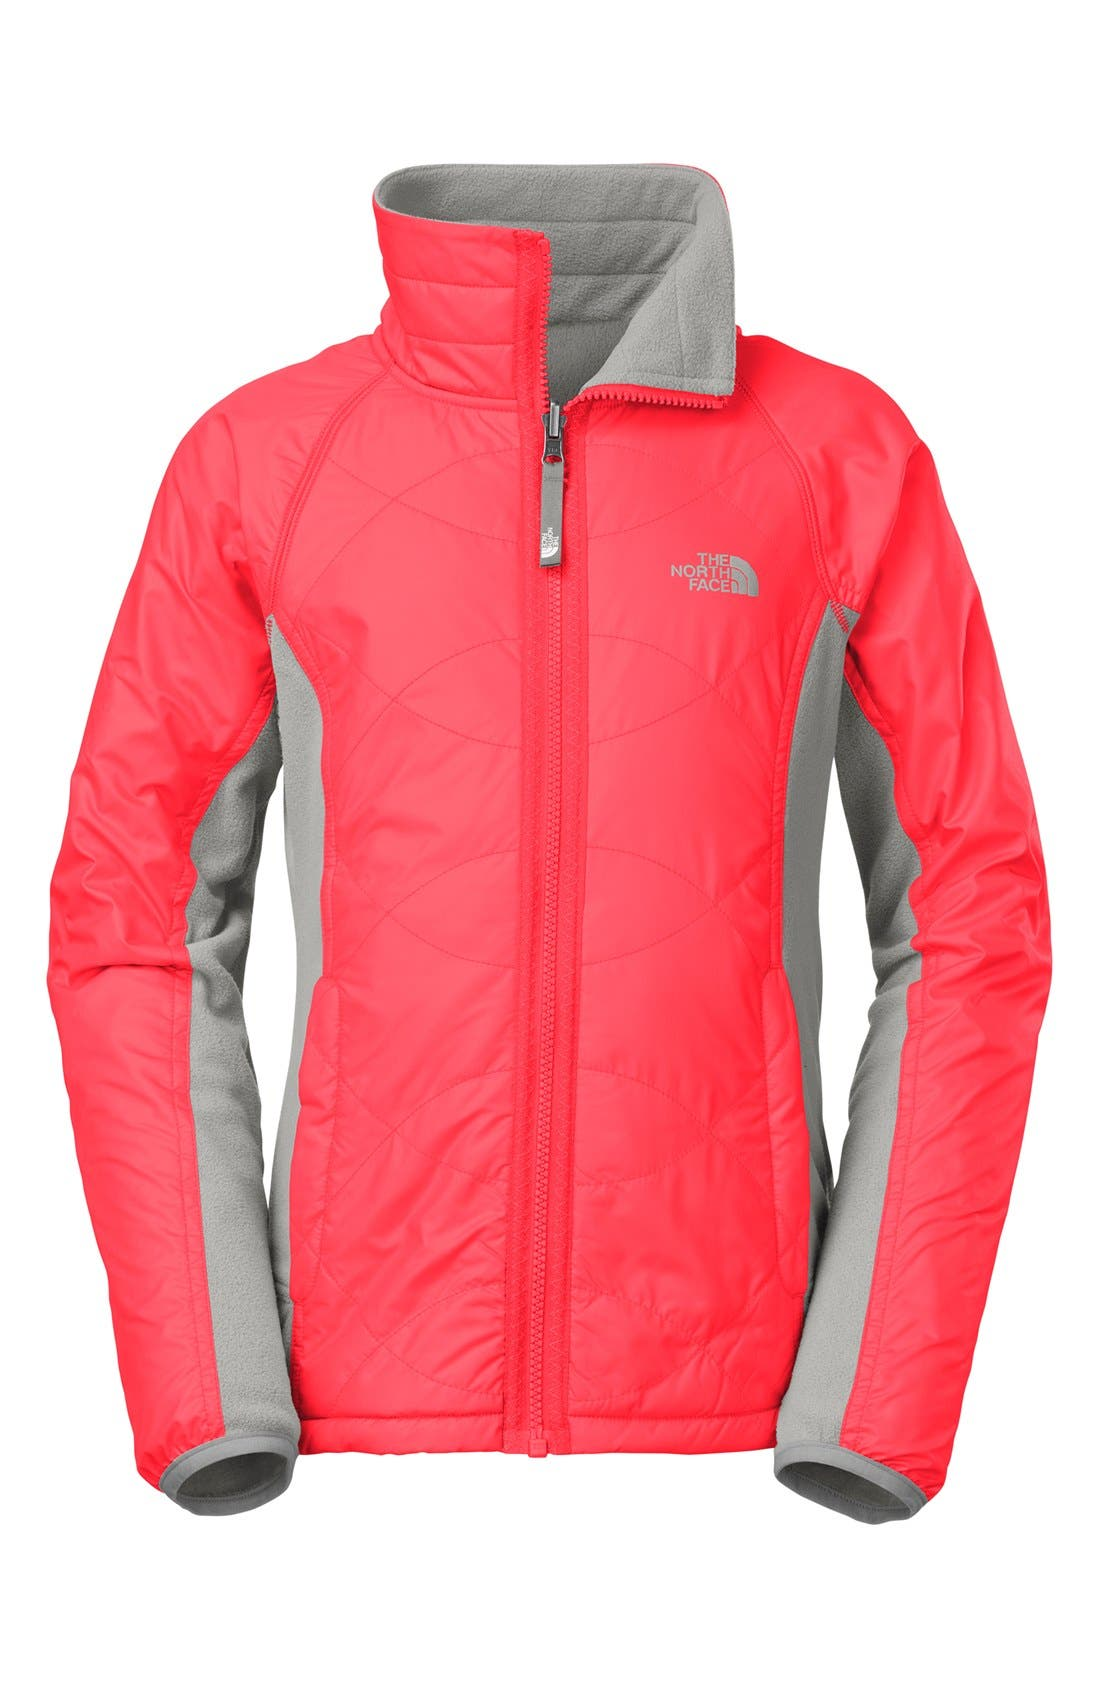 Alternate Image 1 Selected - The North Face 'Madison' Reversible Jacket (Little Girl)